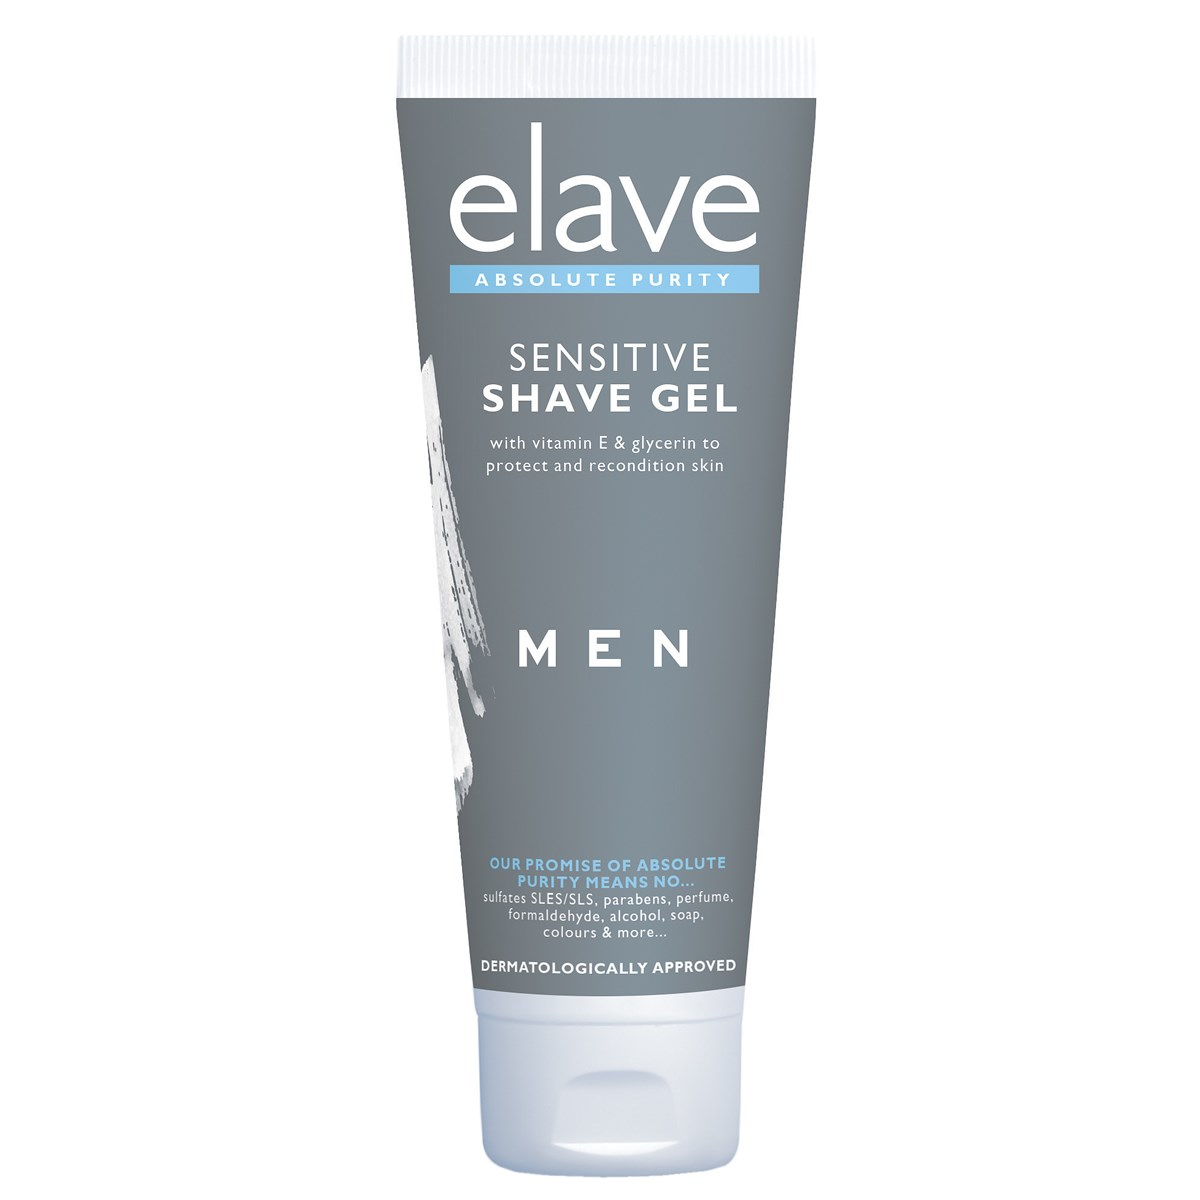 Elave Sensitive Shave Gel for Men